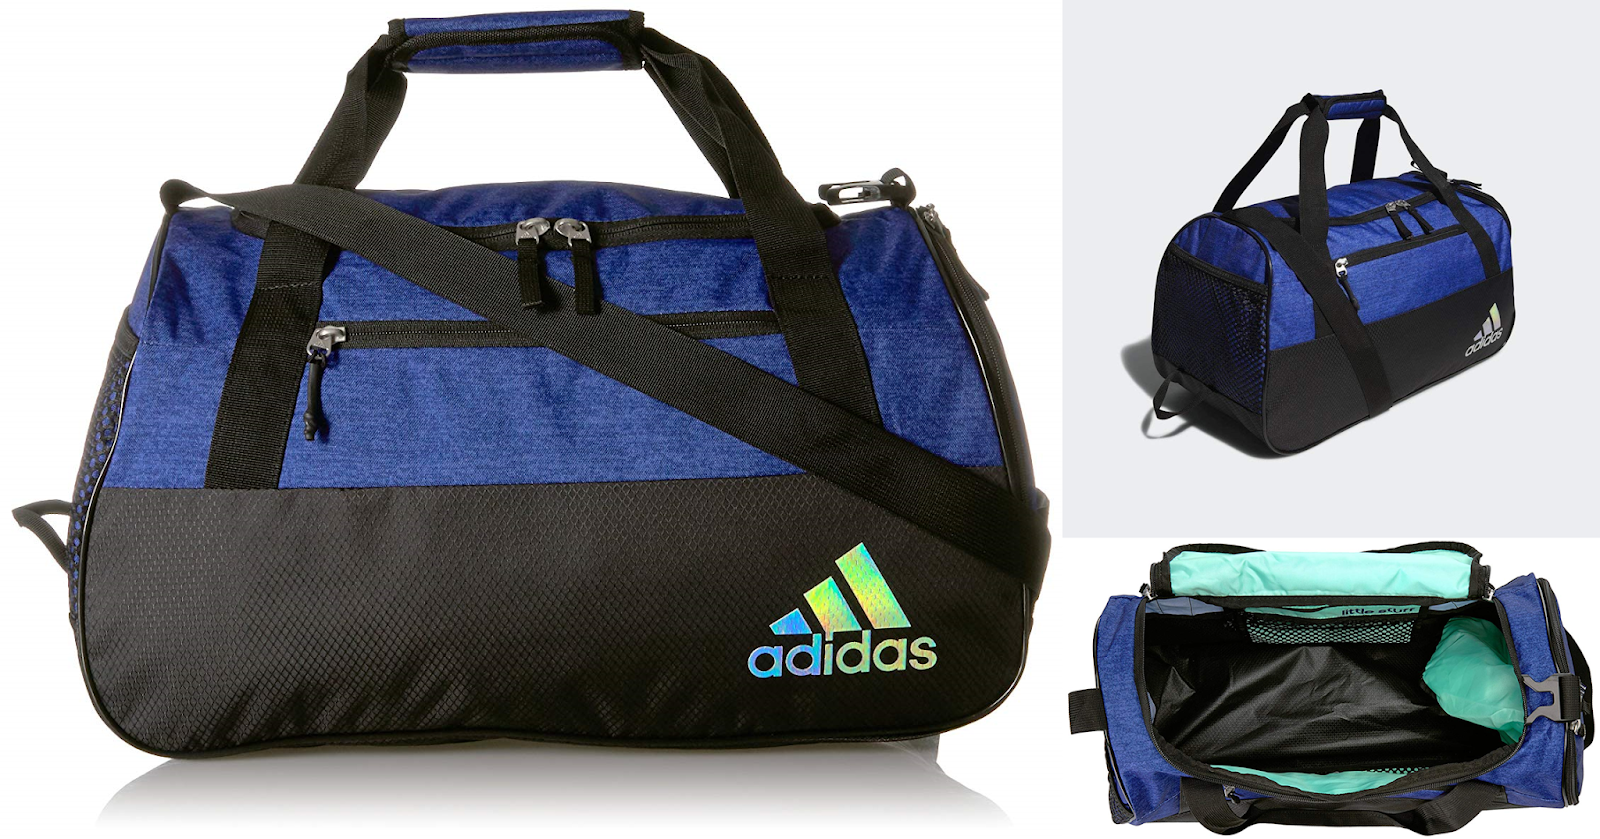 Amazon has this Adidas Squad III Duffel Bag in color Mystery Ink Blue on  sale for  18.75 (Reg.  44.40). This is made of polyester. c37f9ce1cb01f